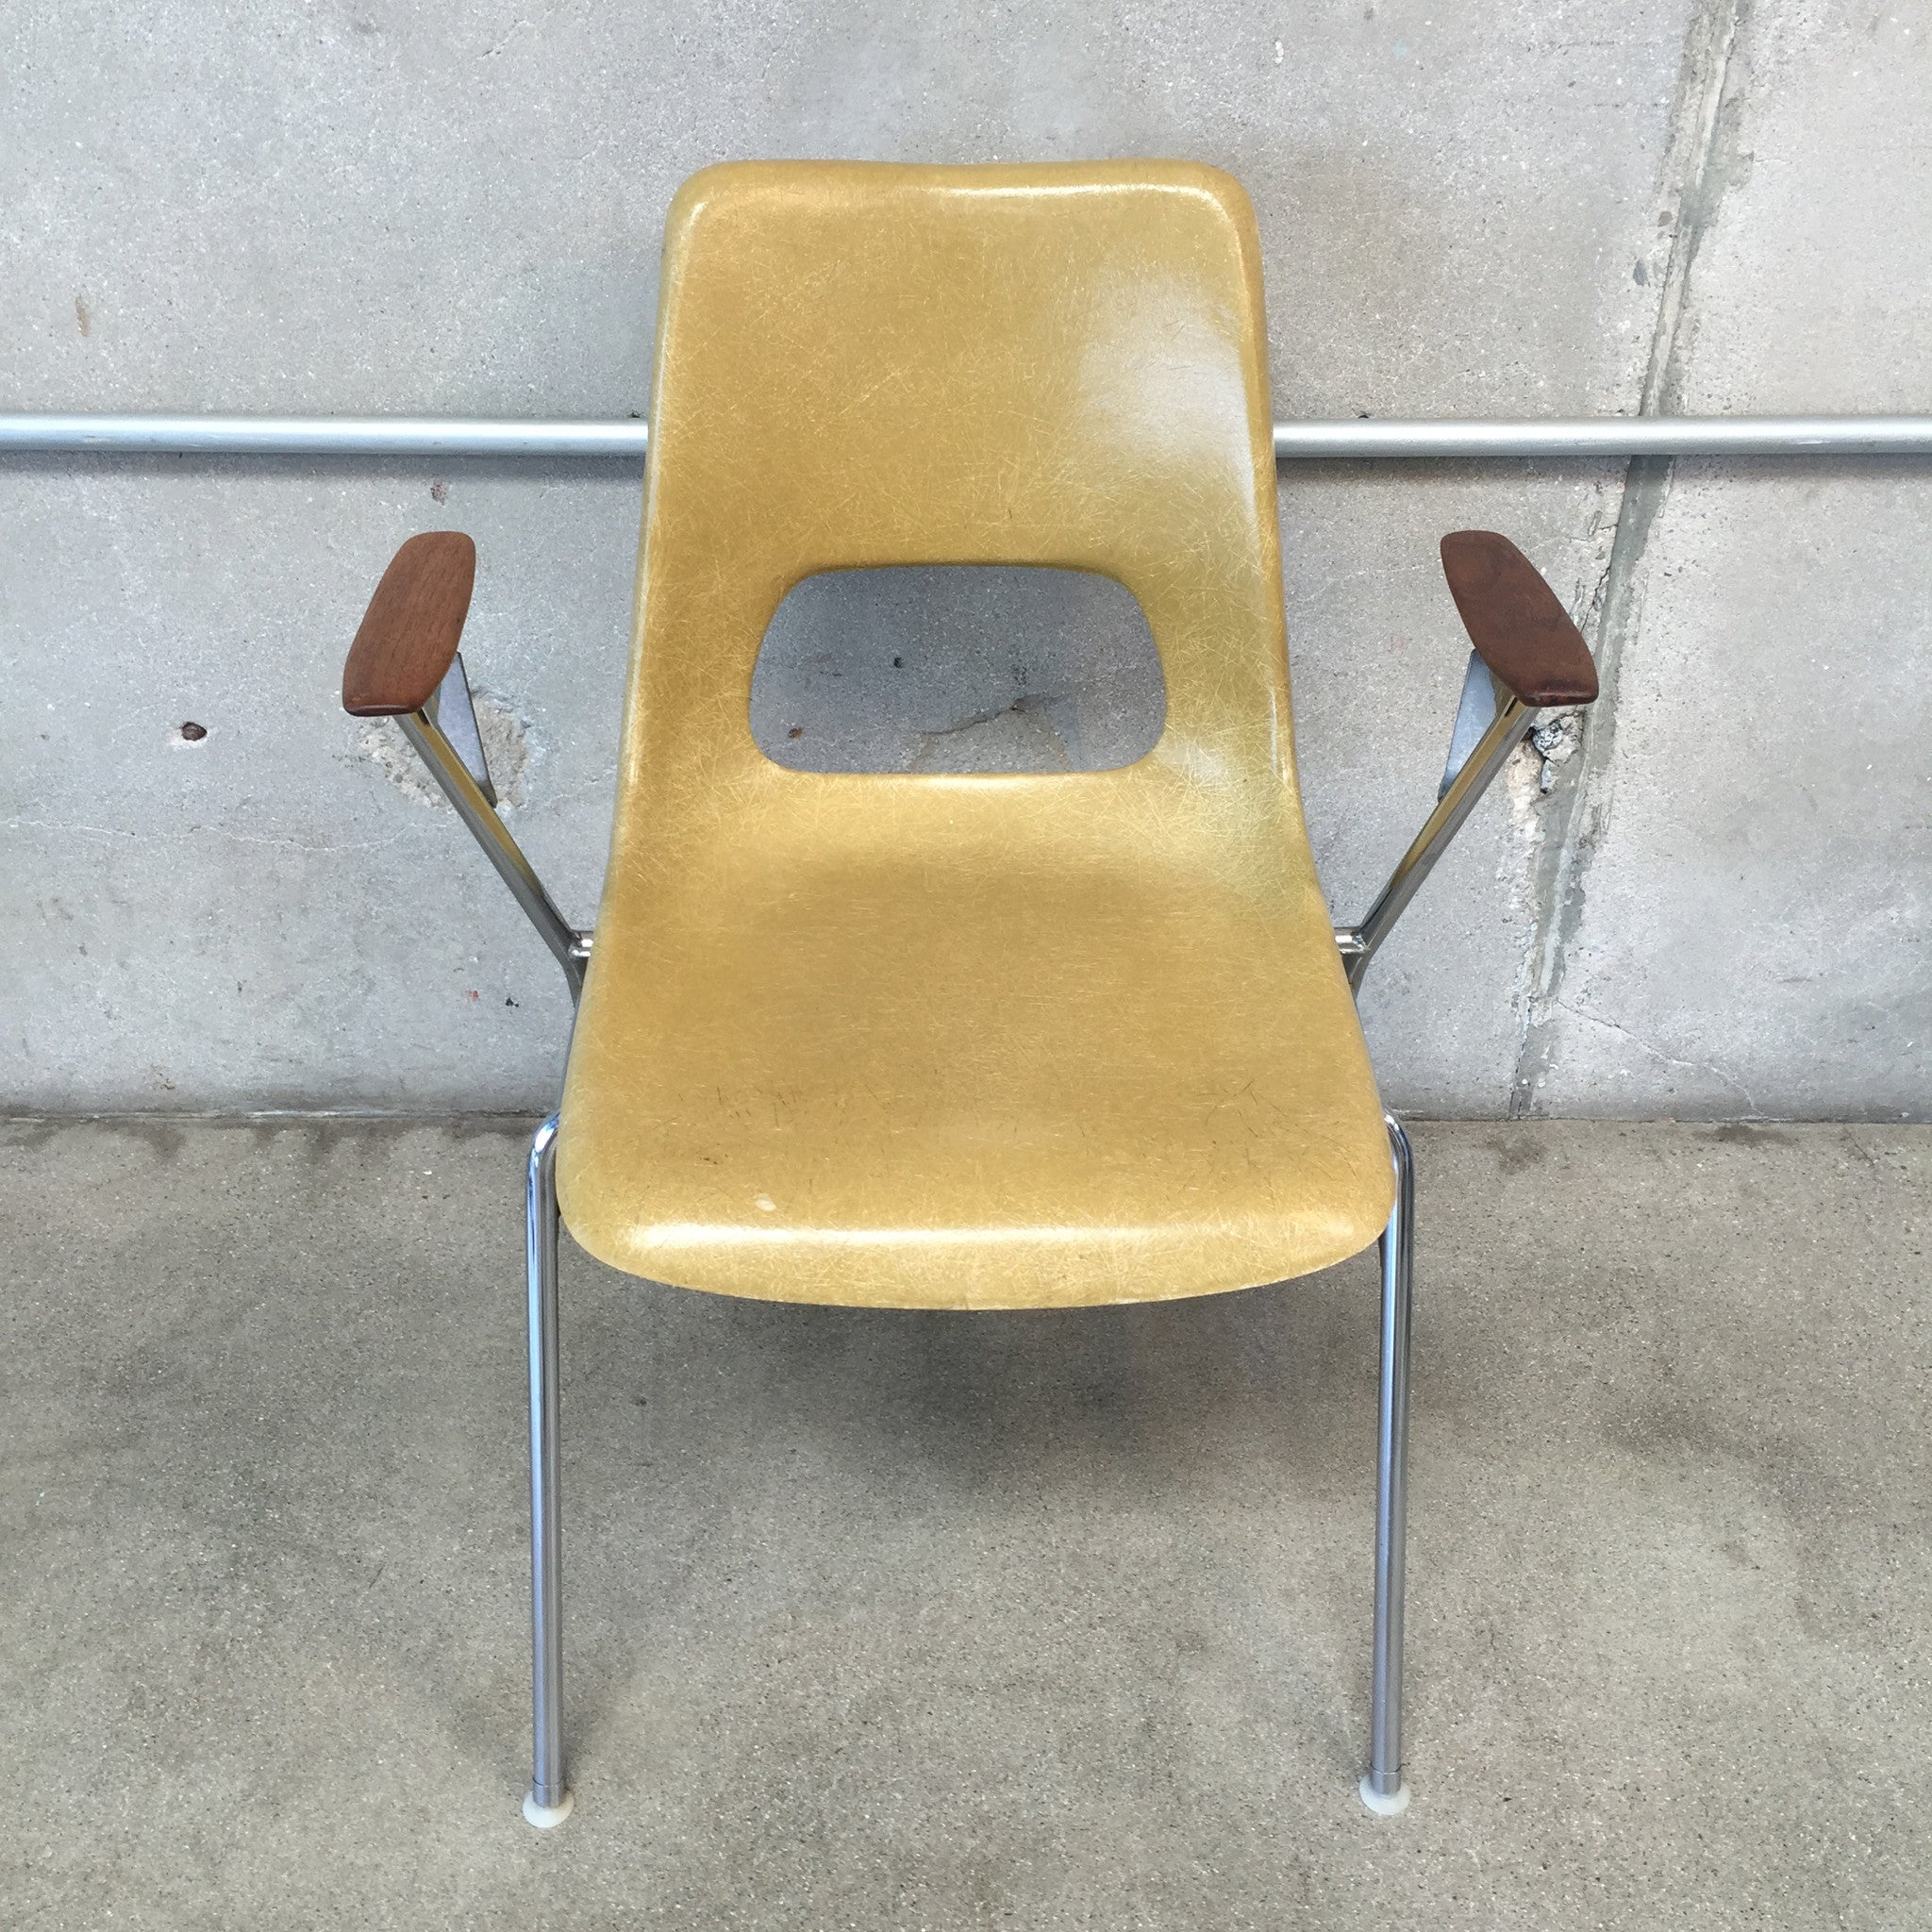 Fiberglass Shell Chair With Arms ...